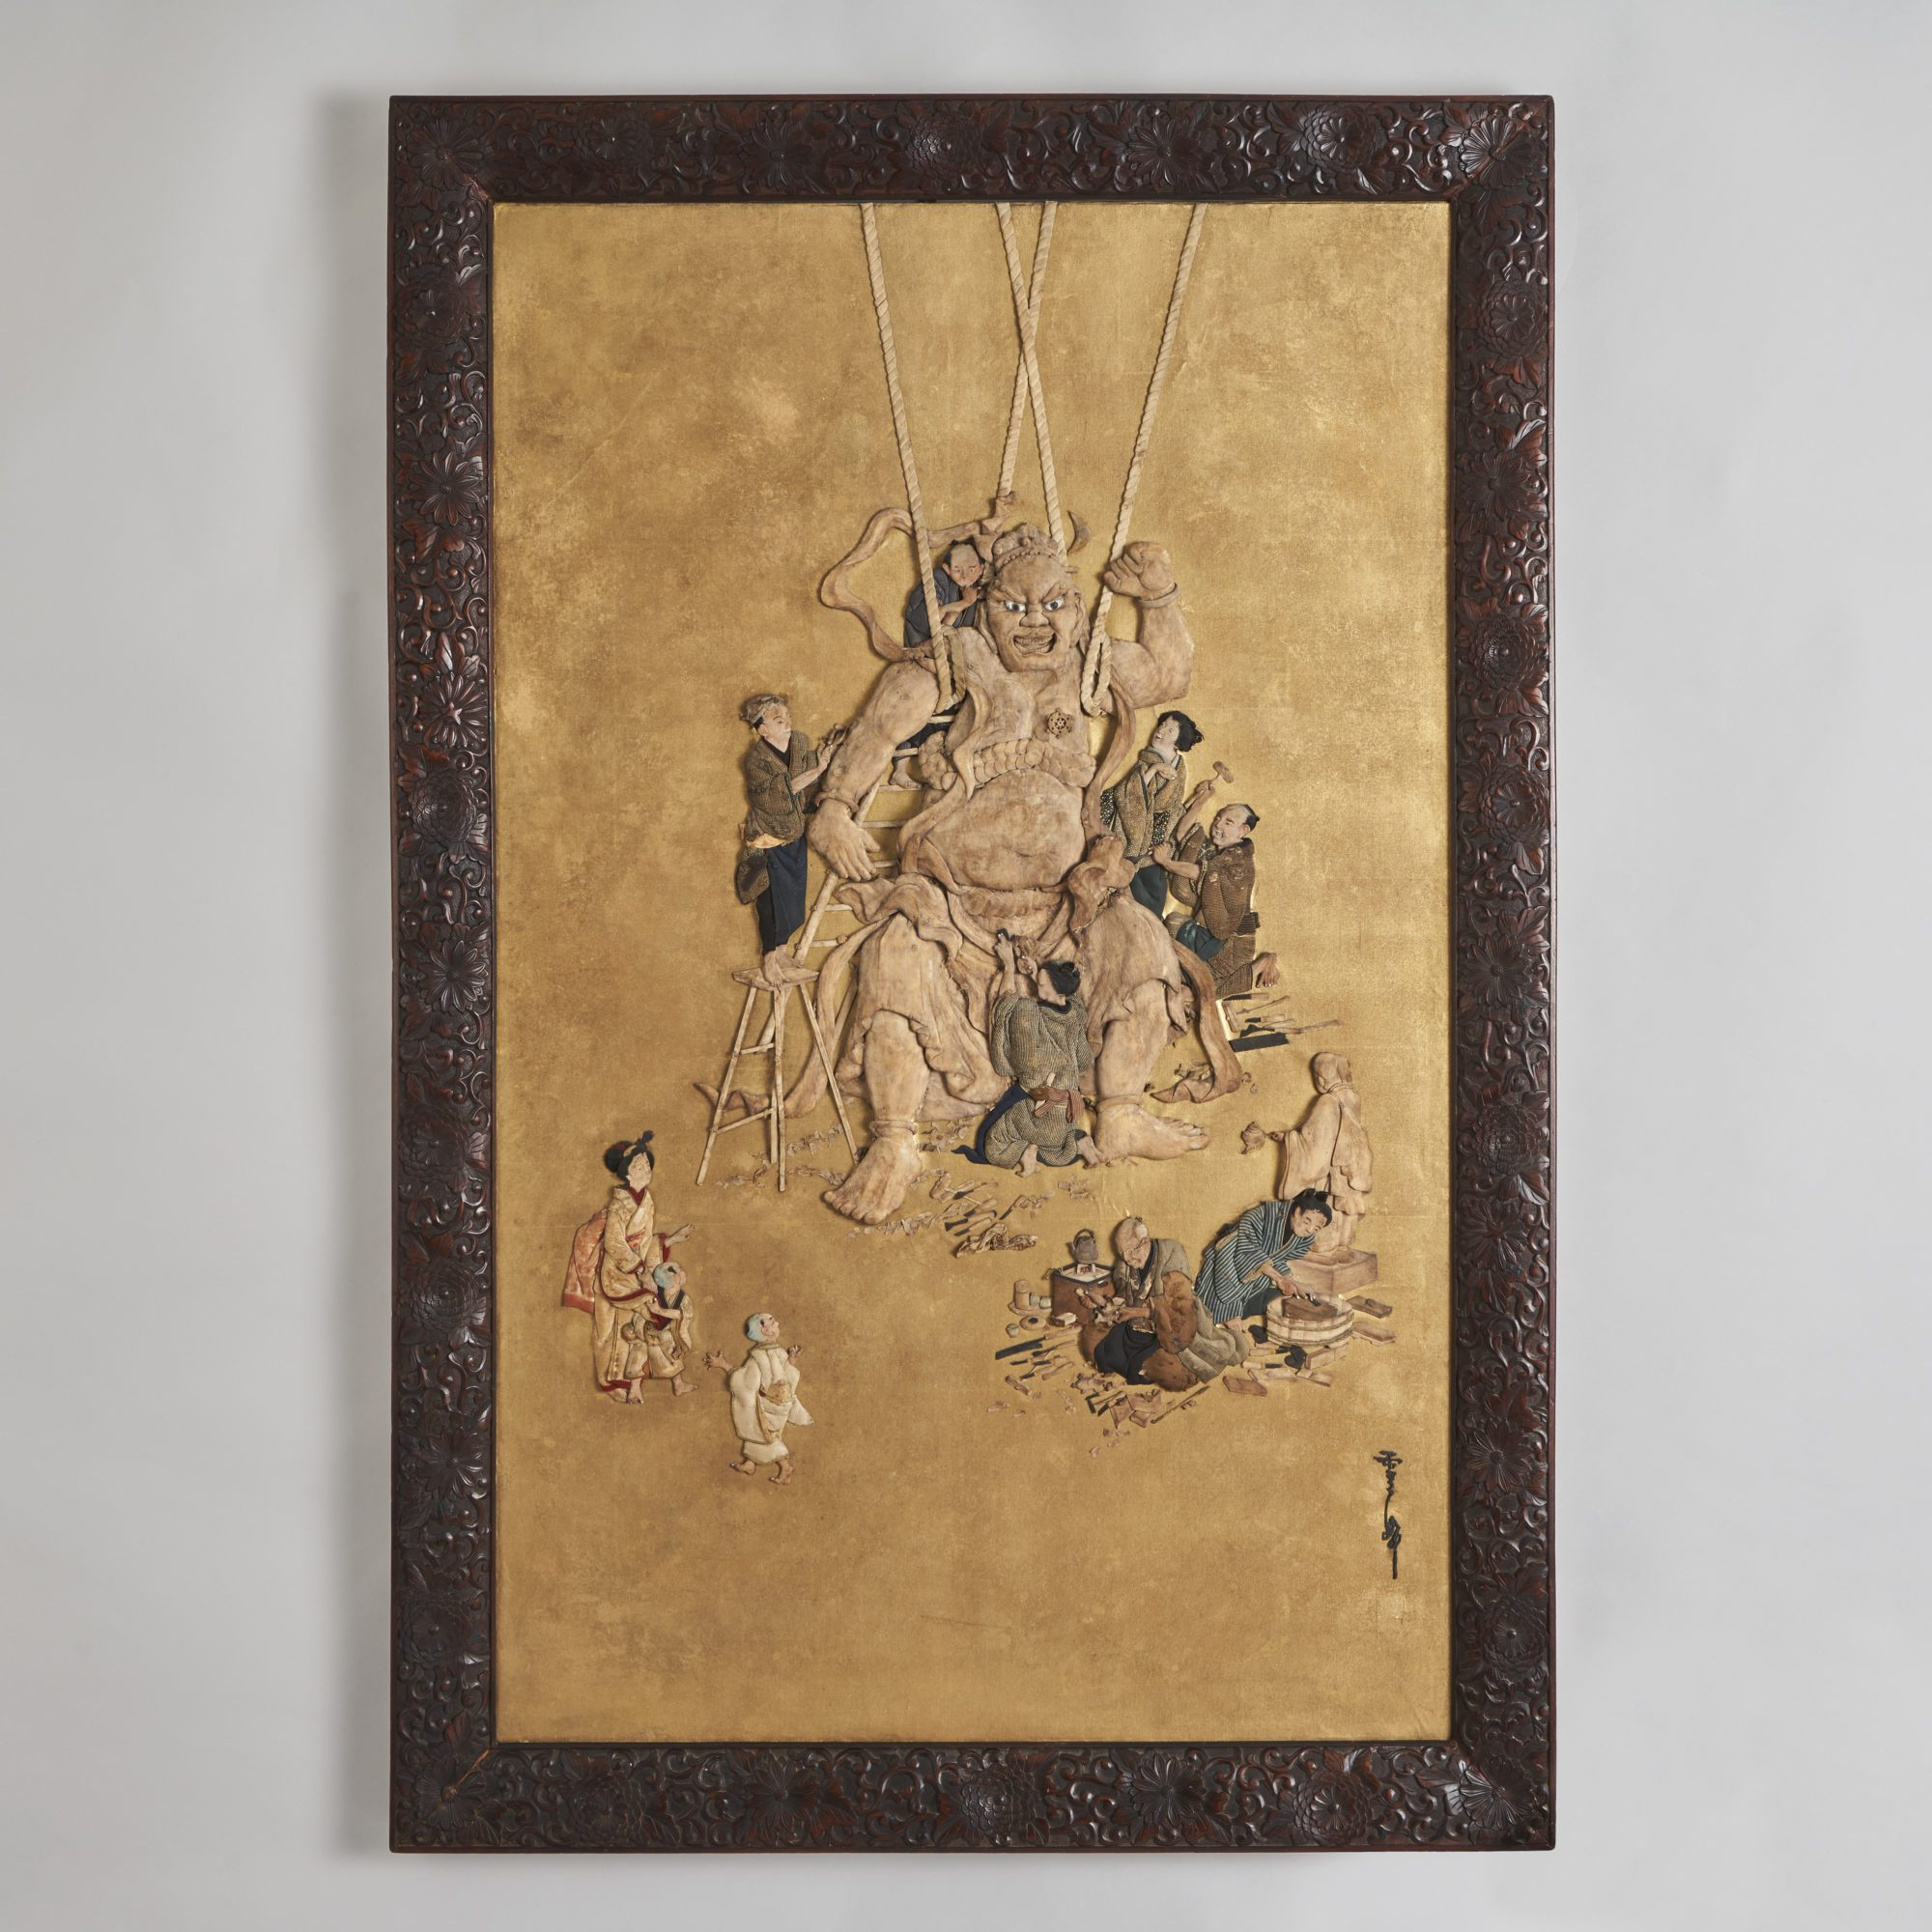 Oshie silk   A magnificent large scale Oshi-e depicting craftsmen and women carving a giant Nio statue